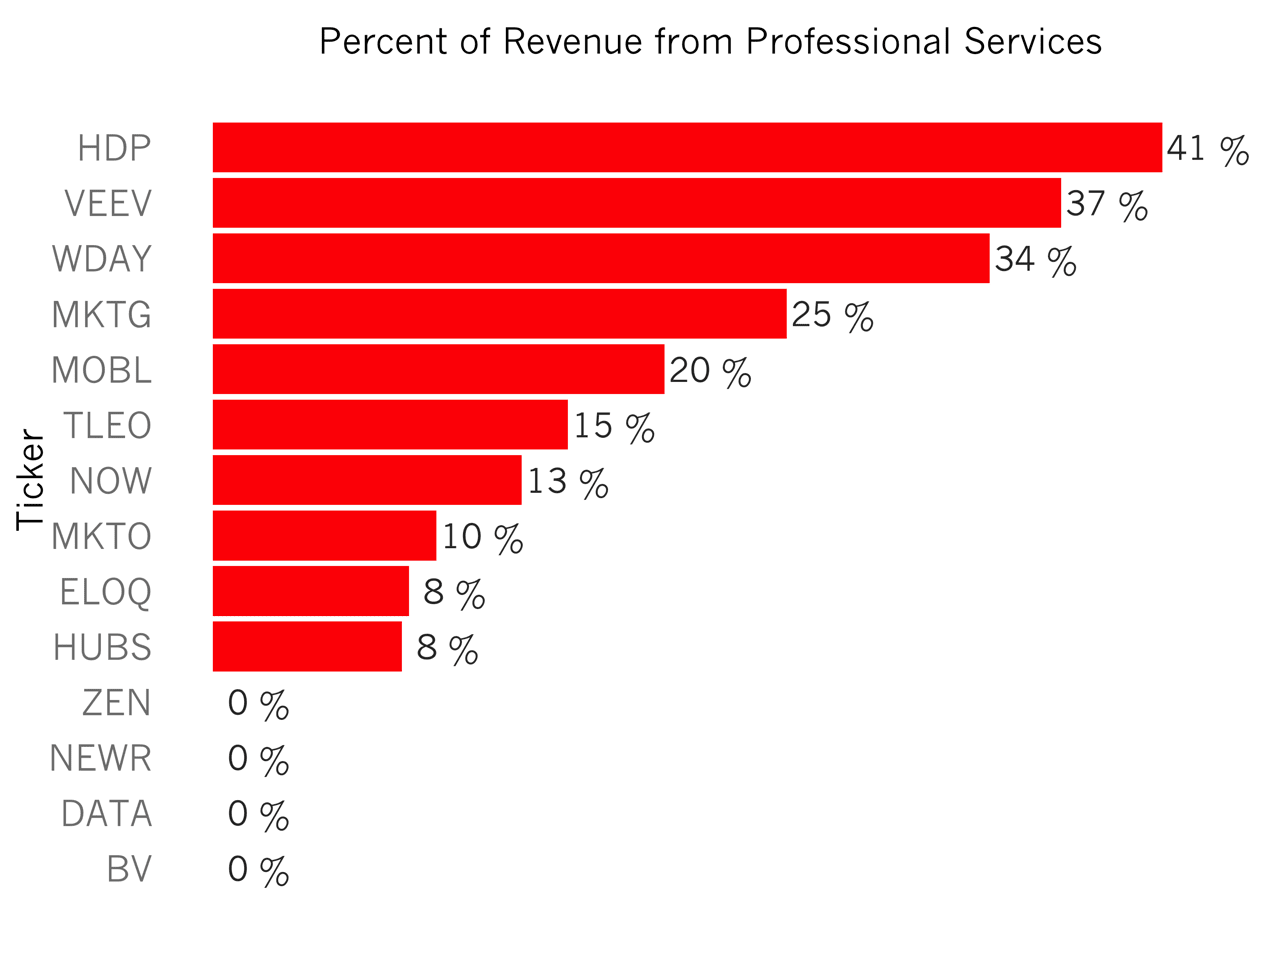 How Important are Professional Services to Your Startup?